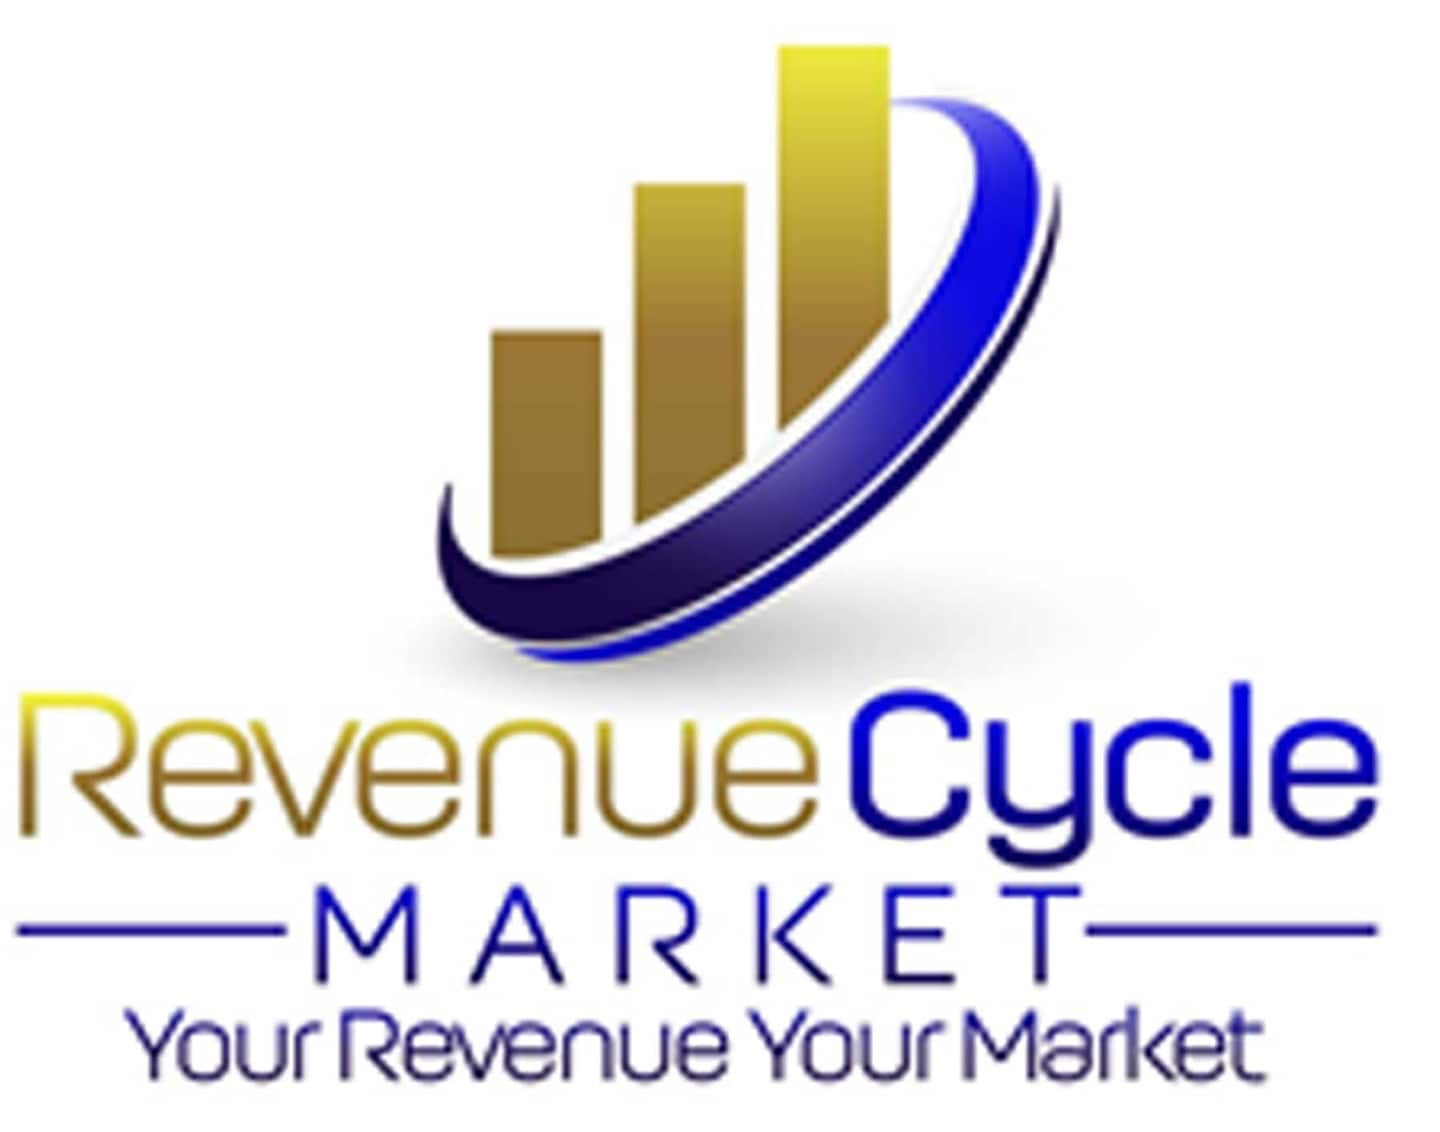 REVENUE CYCLE MARKET, LLC